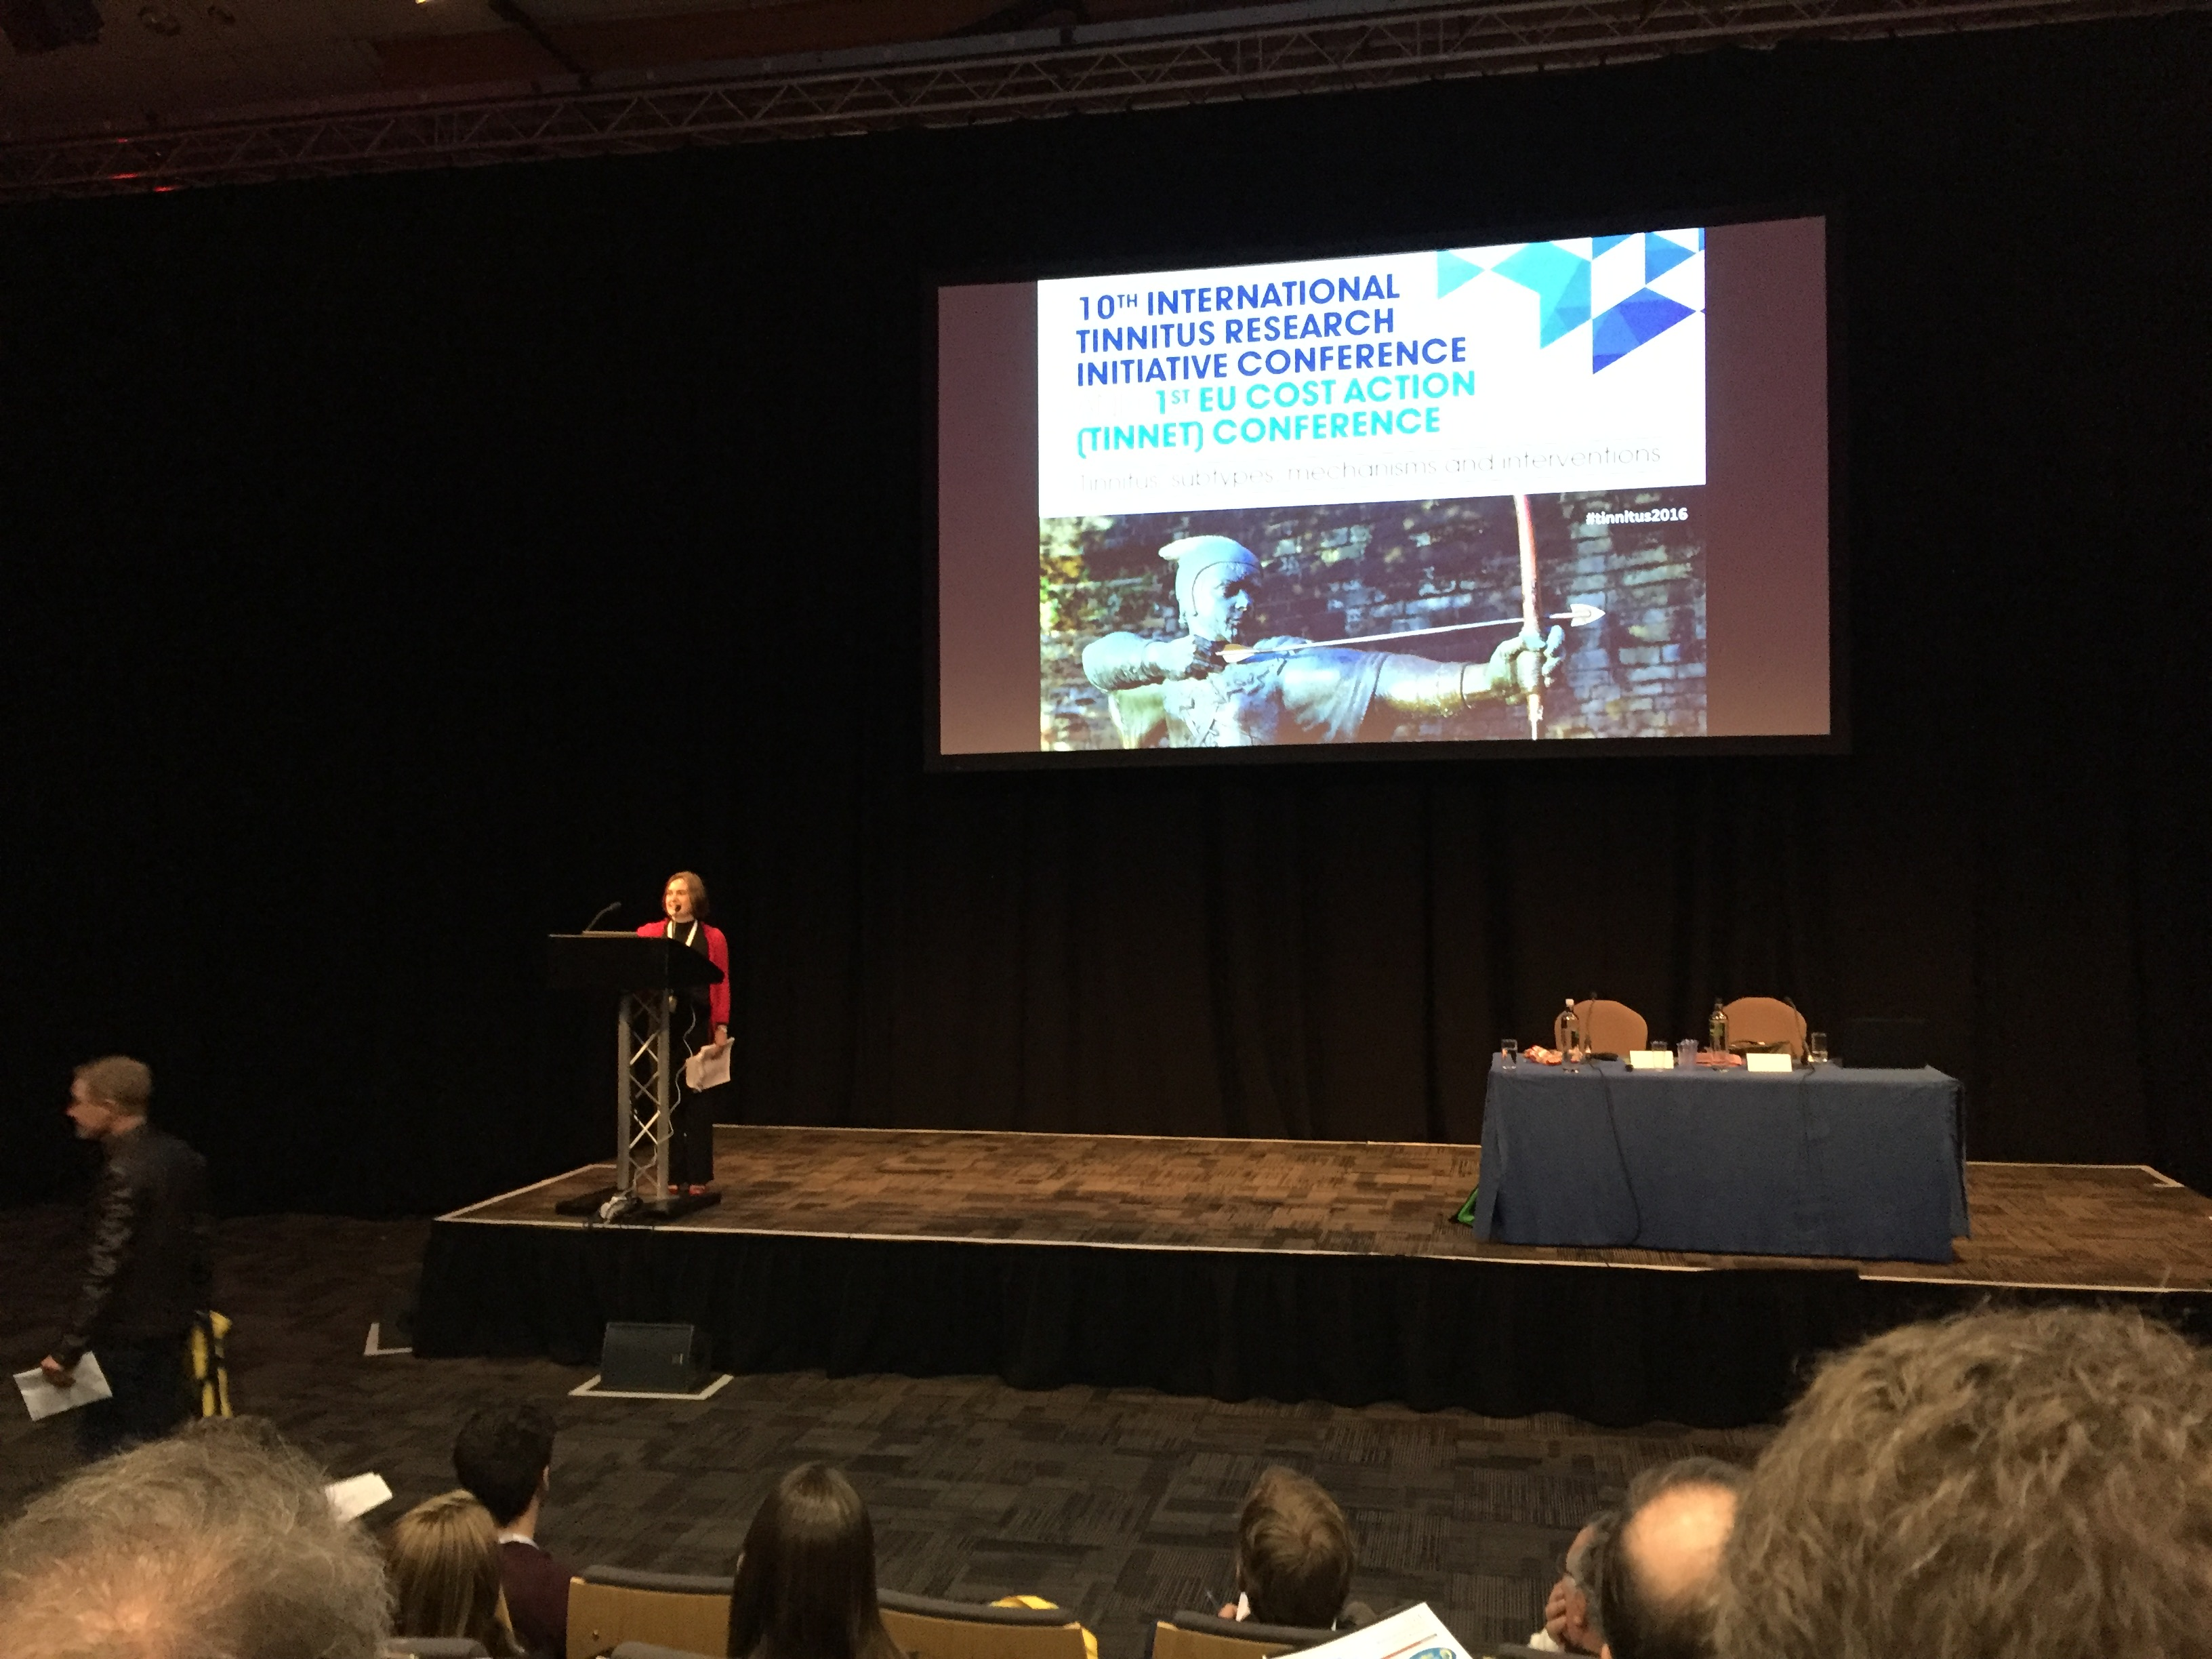 tinnitus-research-initiative-conference-2016-1.jpg